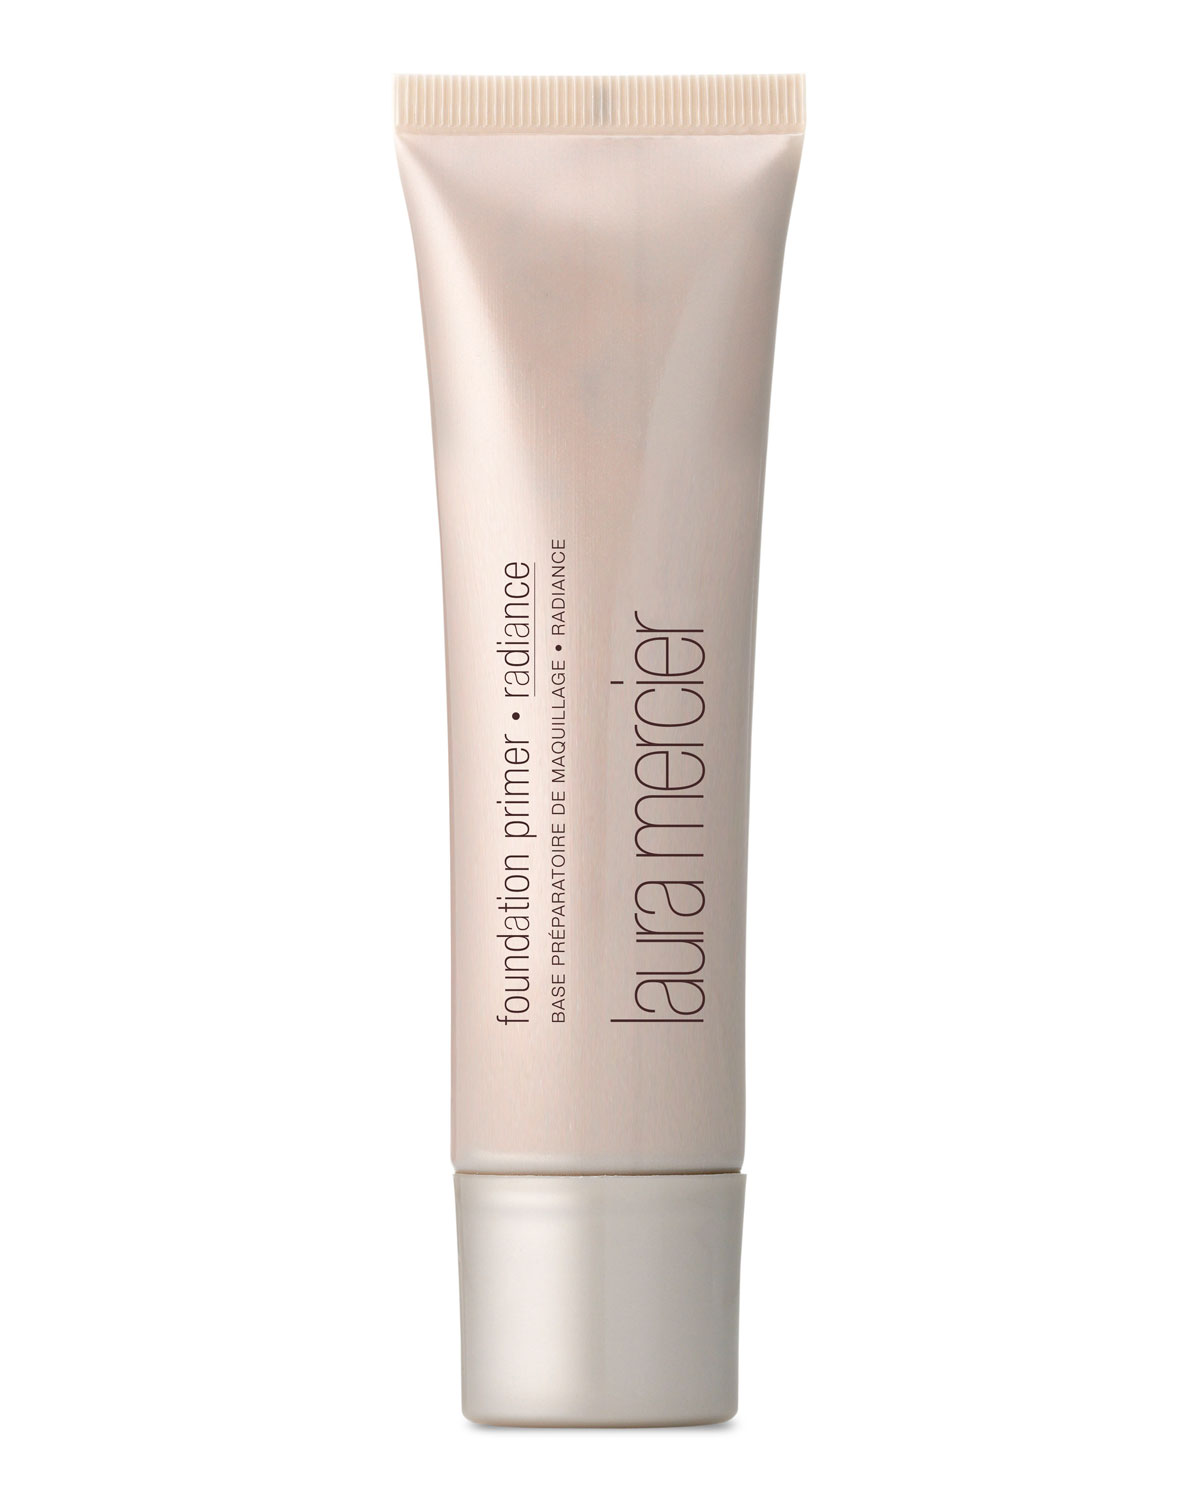 Laura Mercier Foundation Primer, Radiance